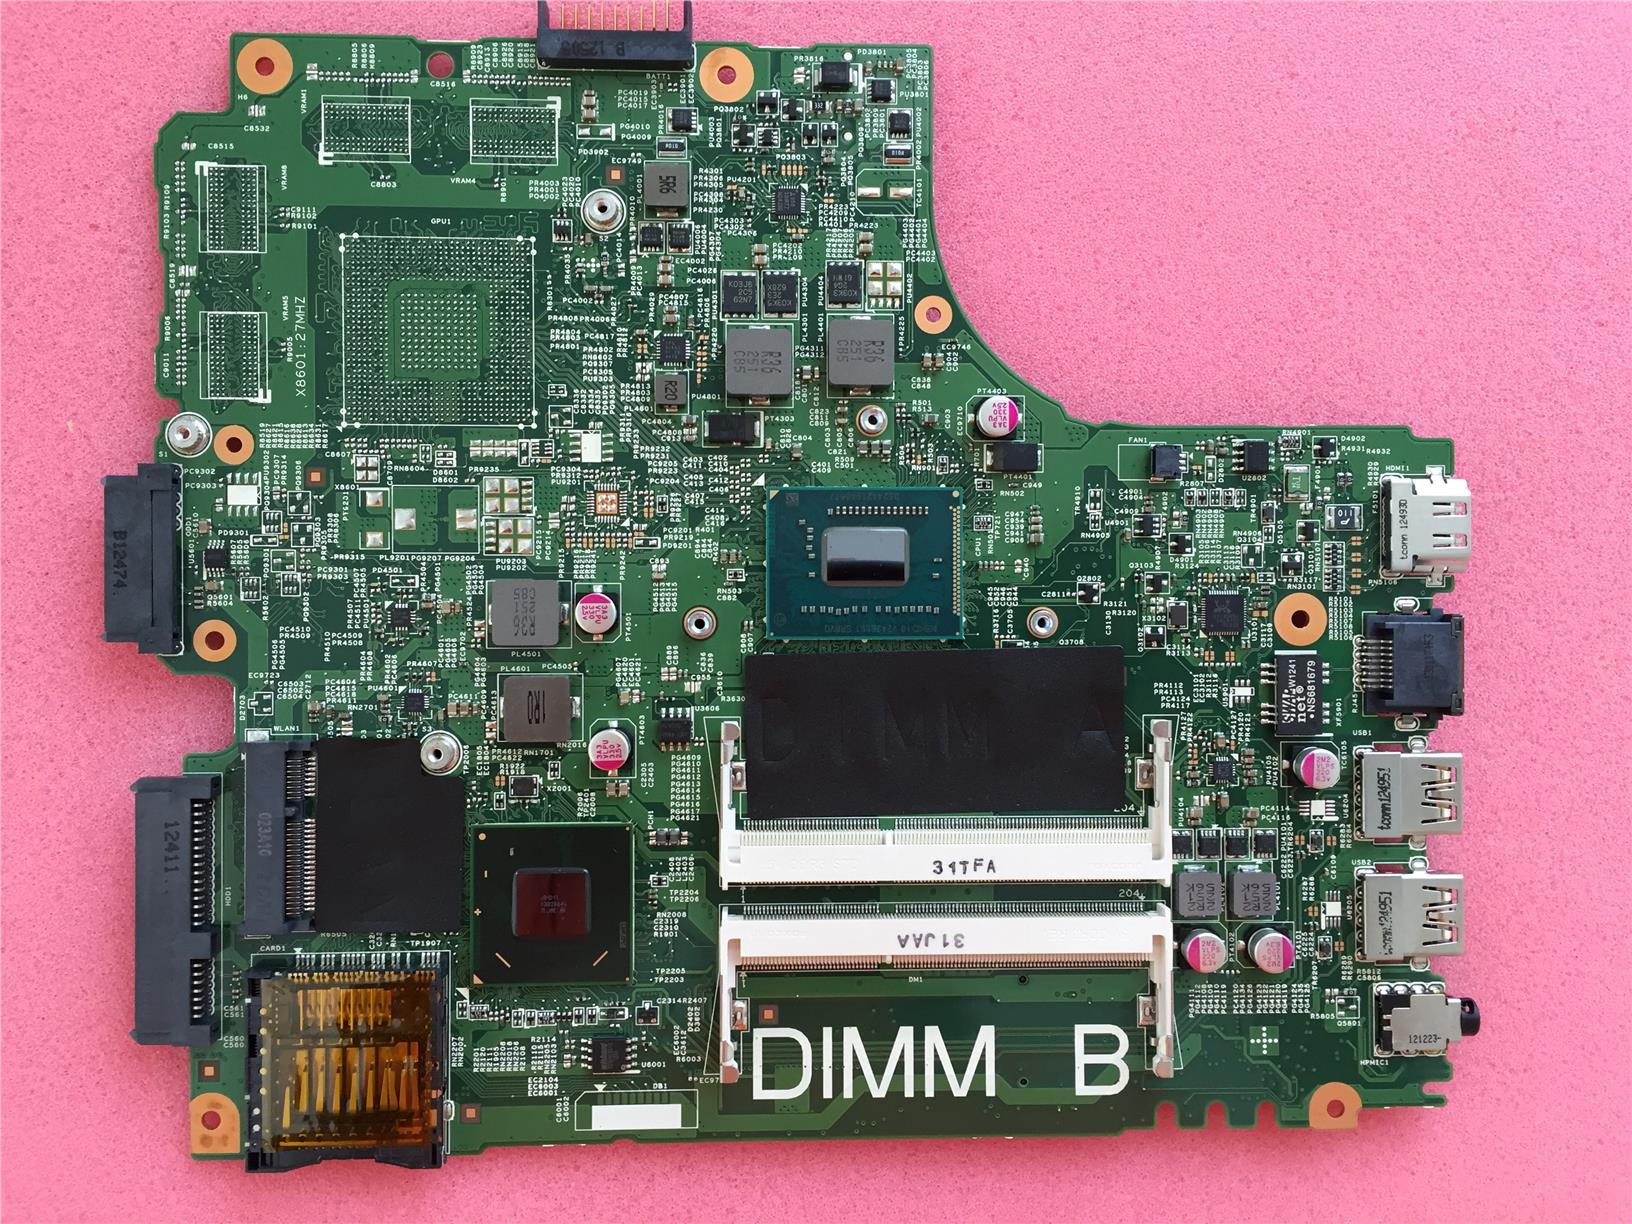 NEW Dell Inspiron 14r 5421 3421 Intel Laptop Motherboard WVWFH 0WVWFH